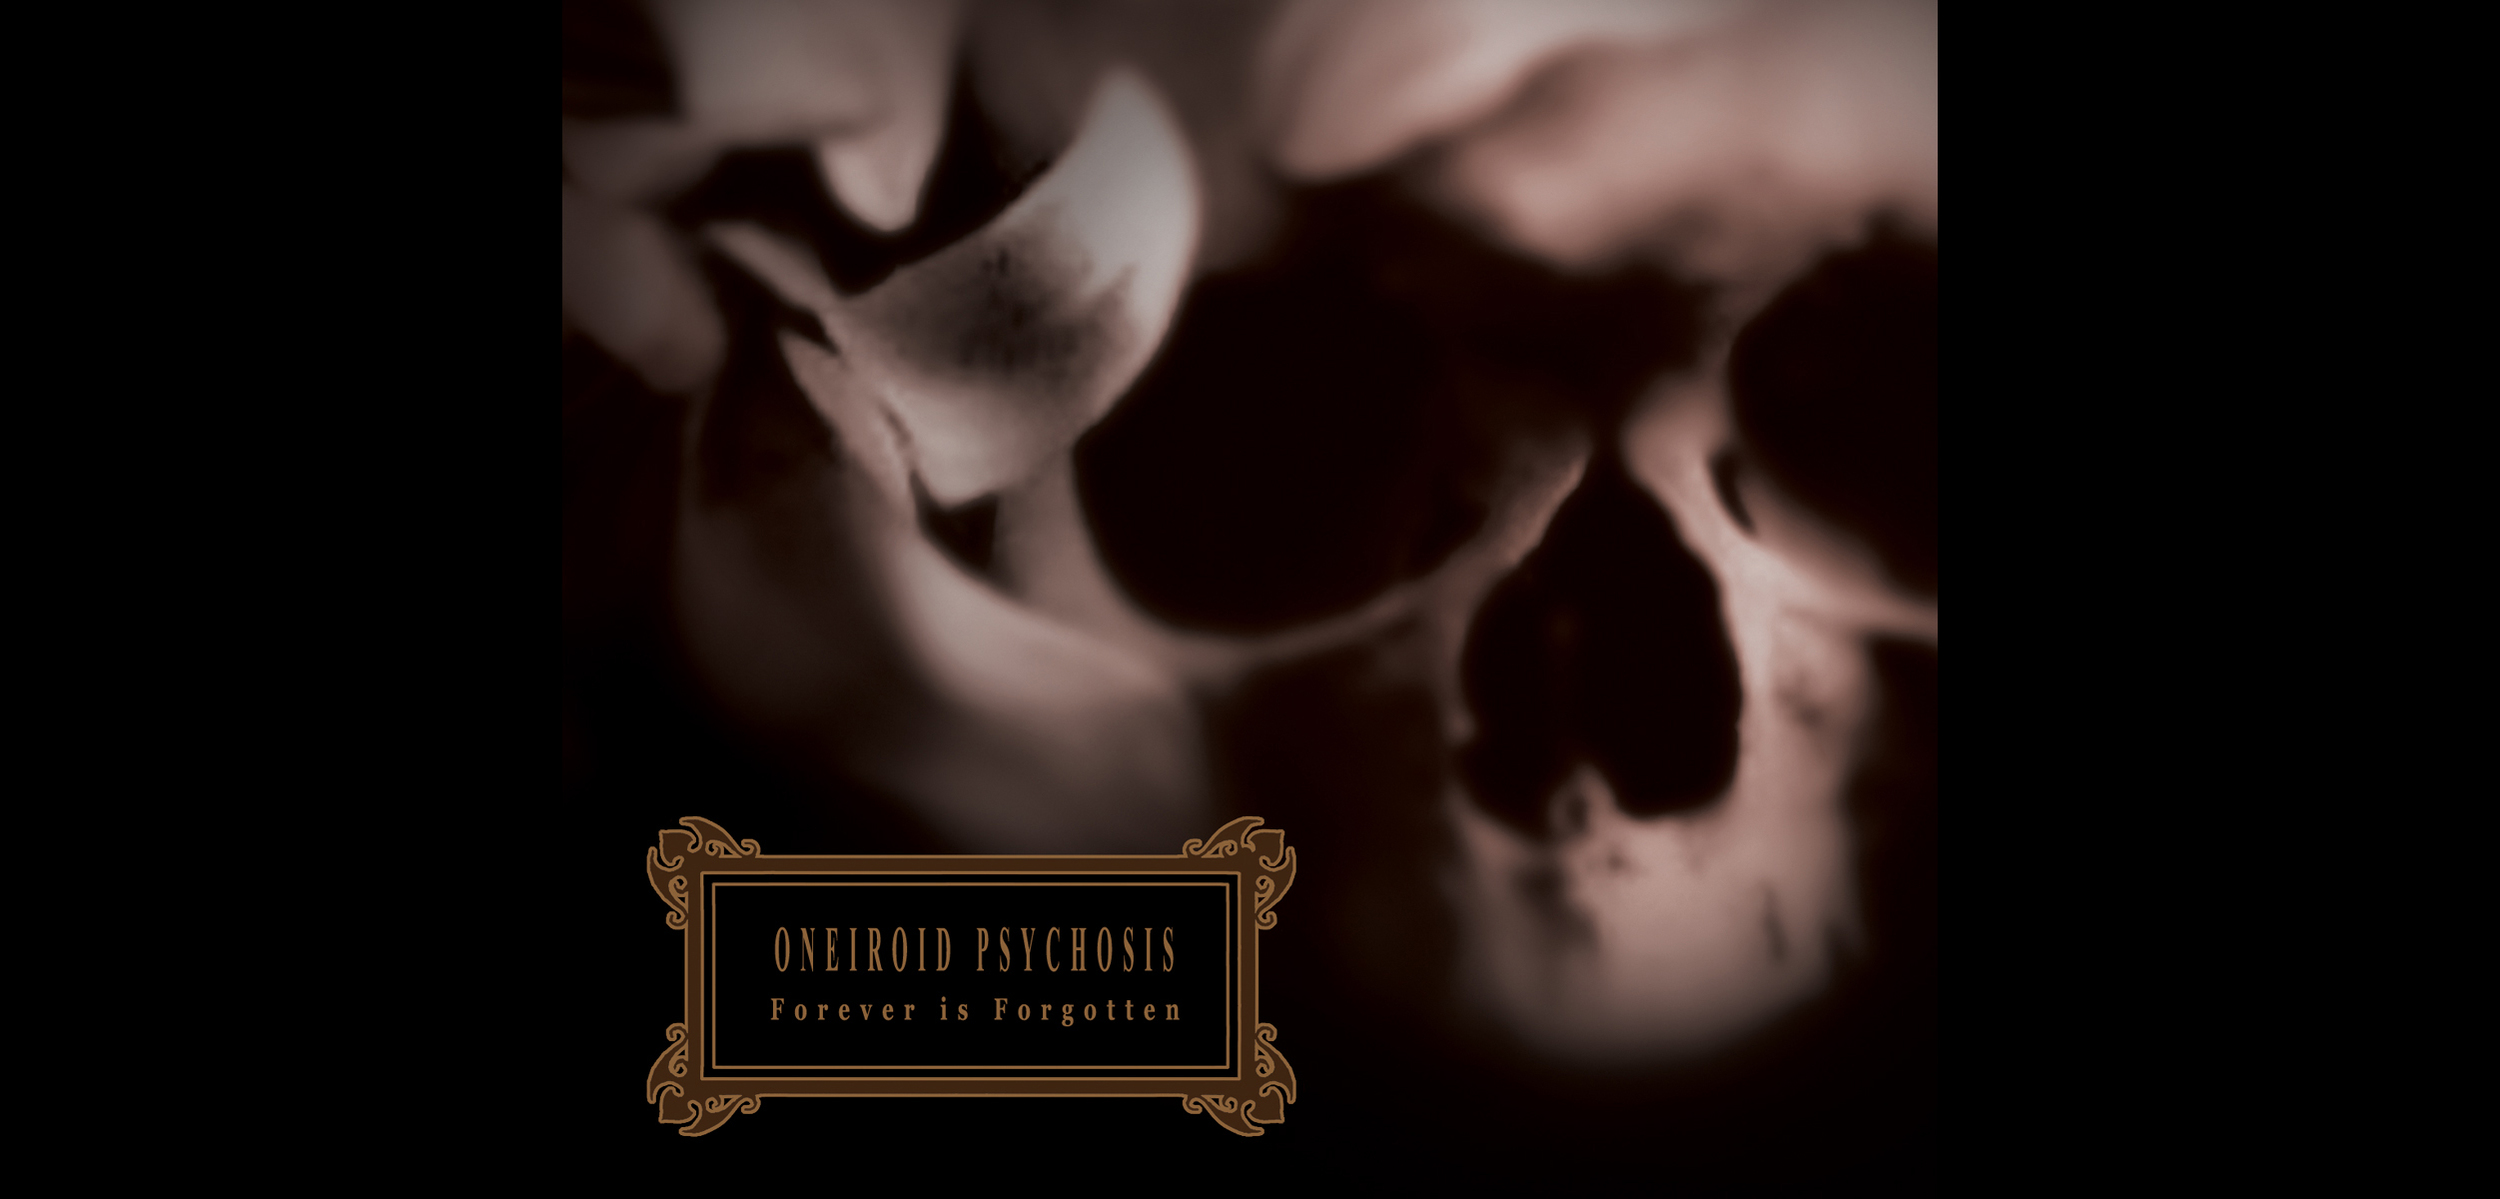 Oneiroid Psychosis,  Forever is Forgotten . Digipak cover . 2004. Photographic illustration, Pen and ink. Released by Cop International.